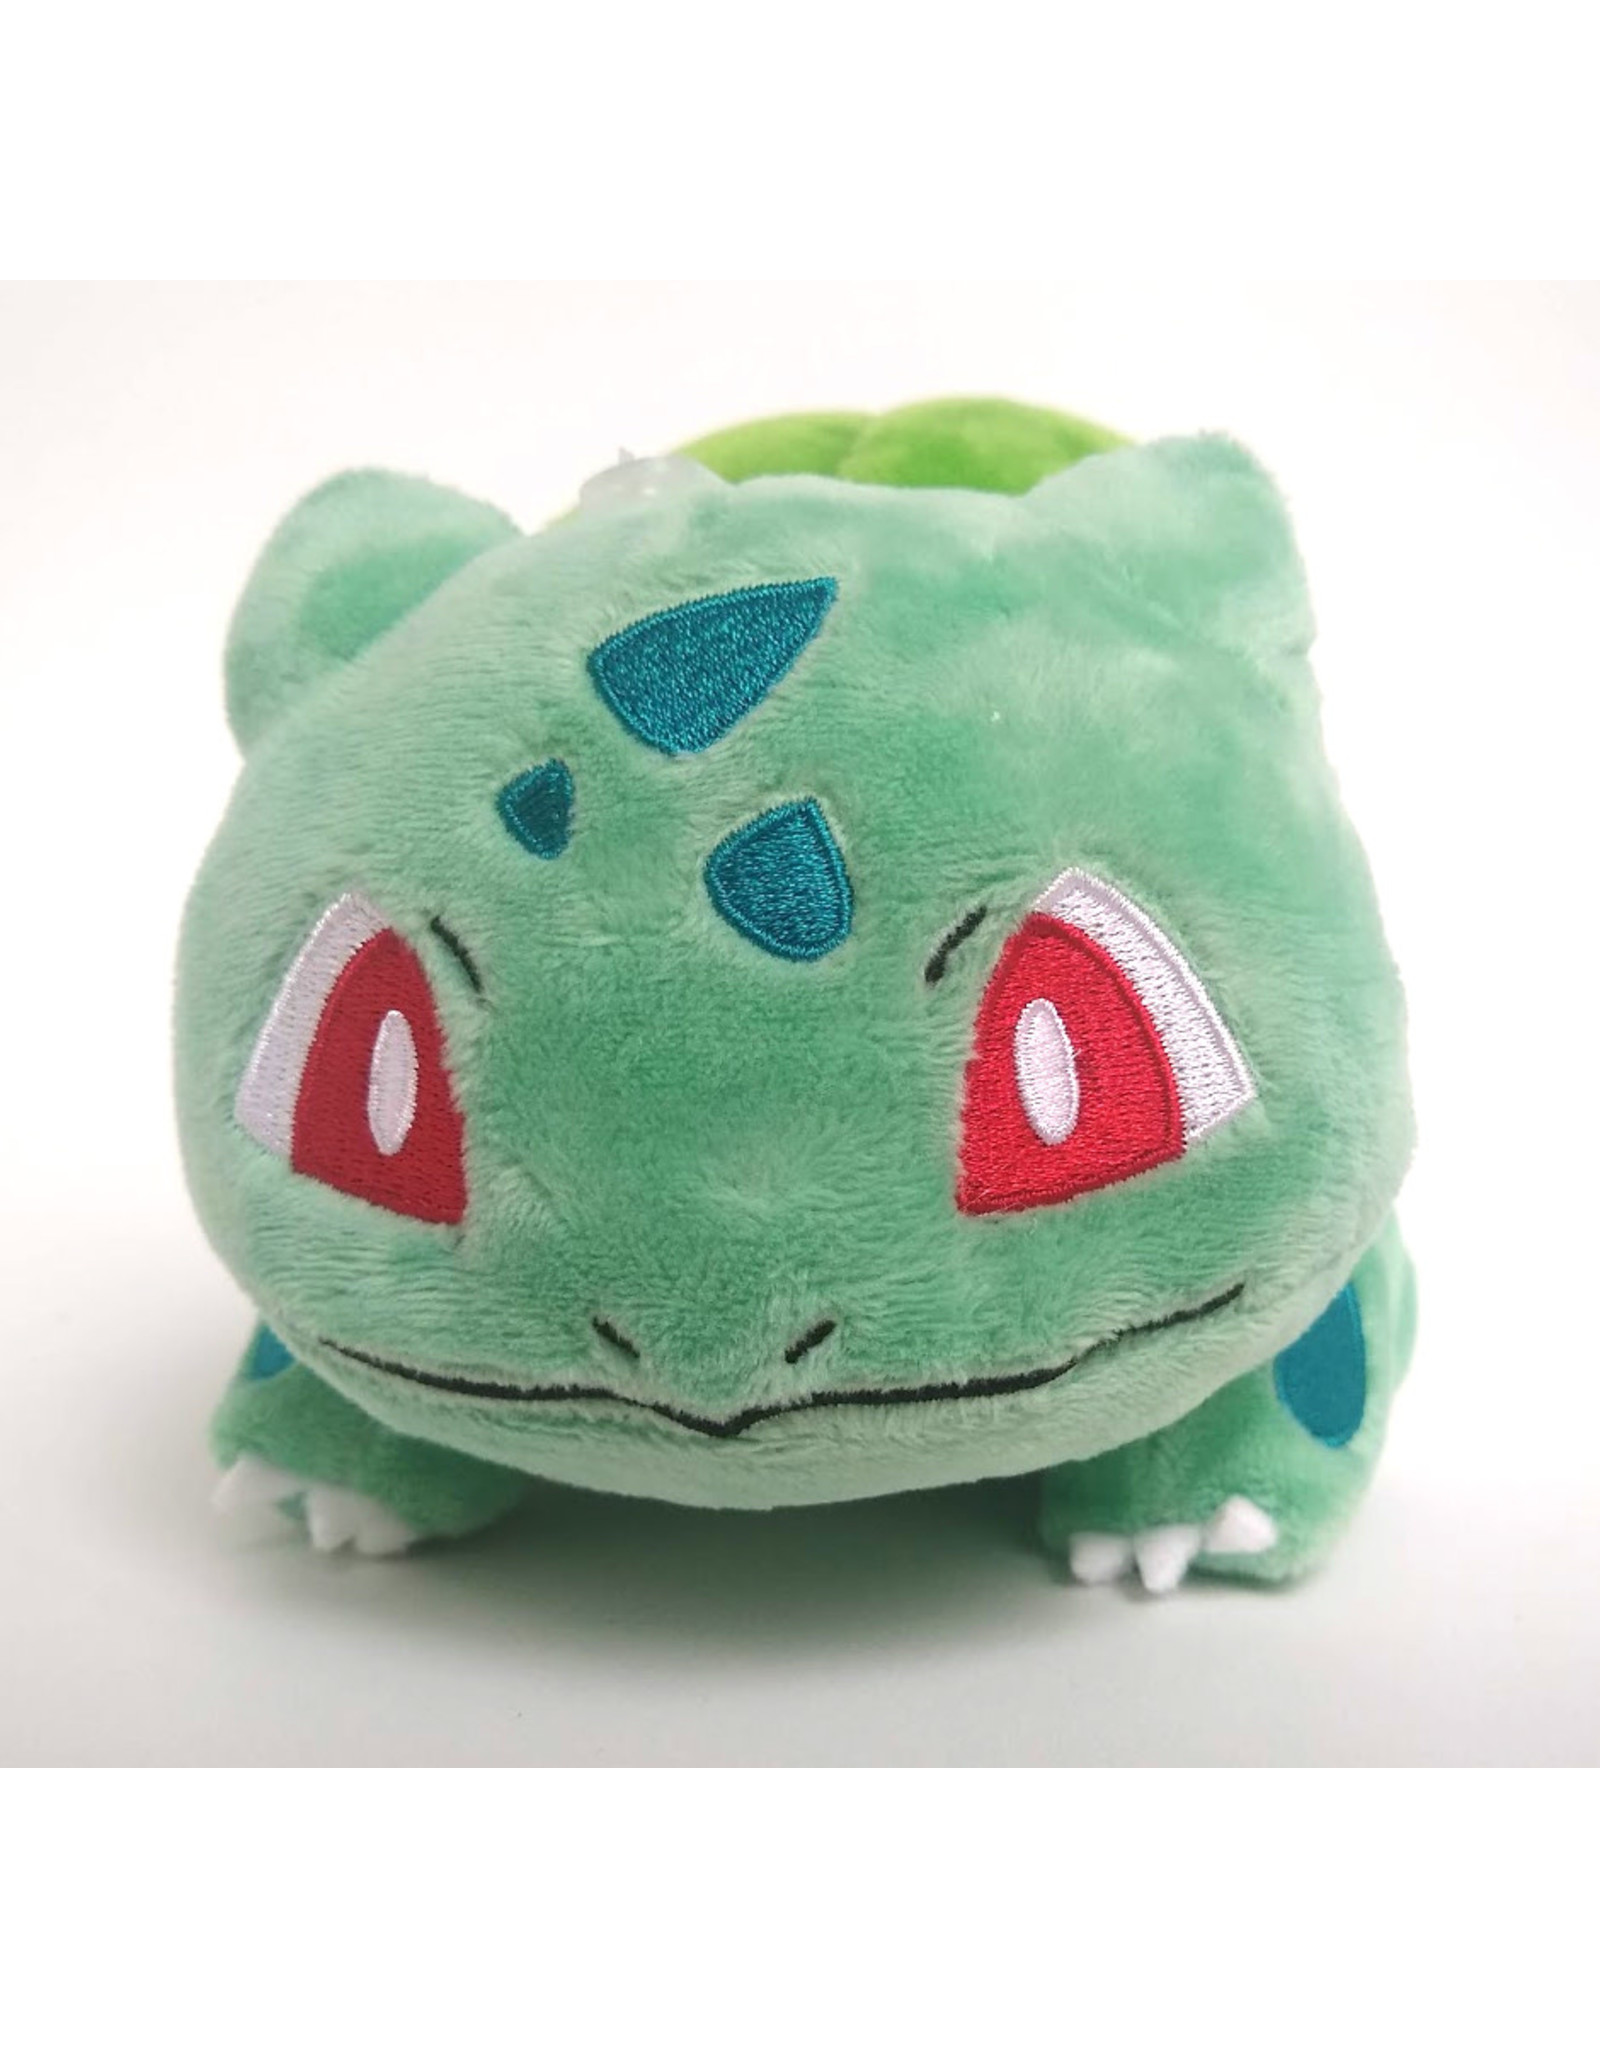 Bulbasaur - Pokemon Plushie - 12cm (Japanese import)